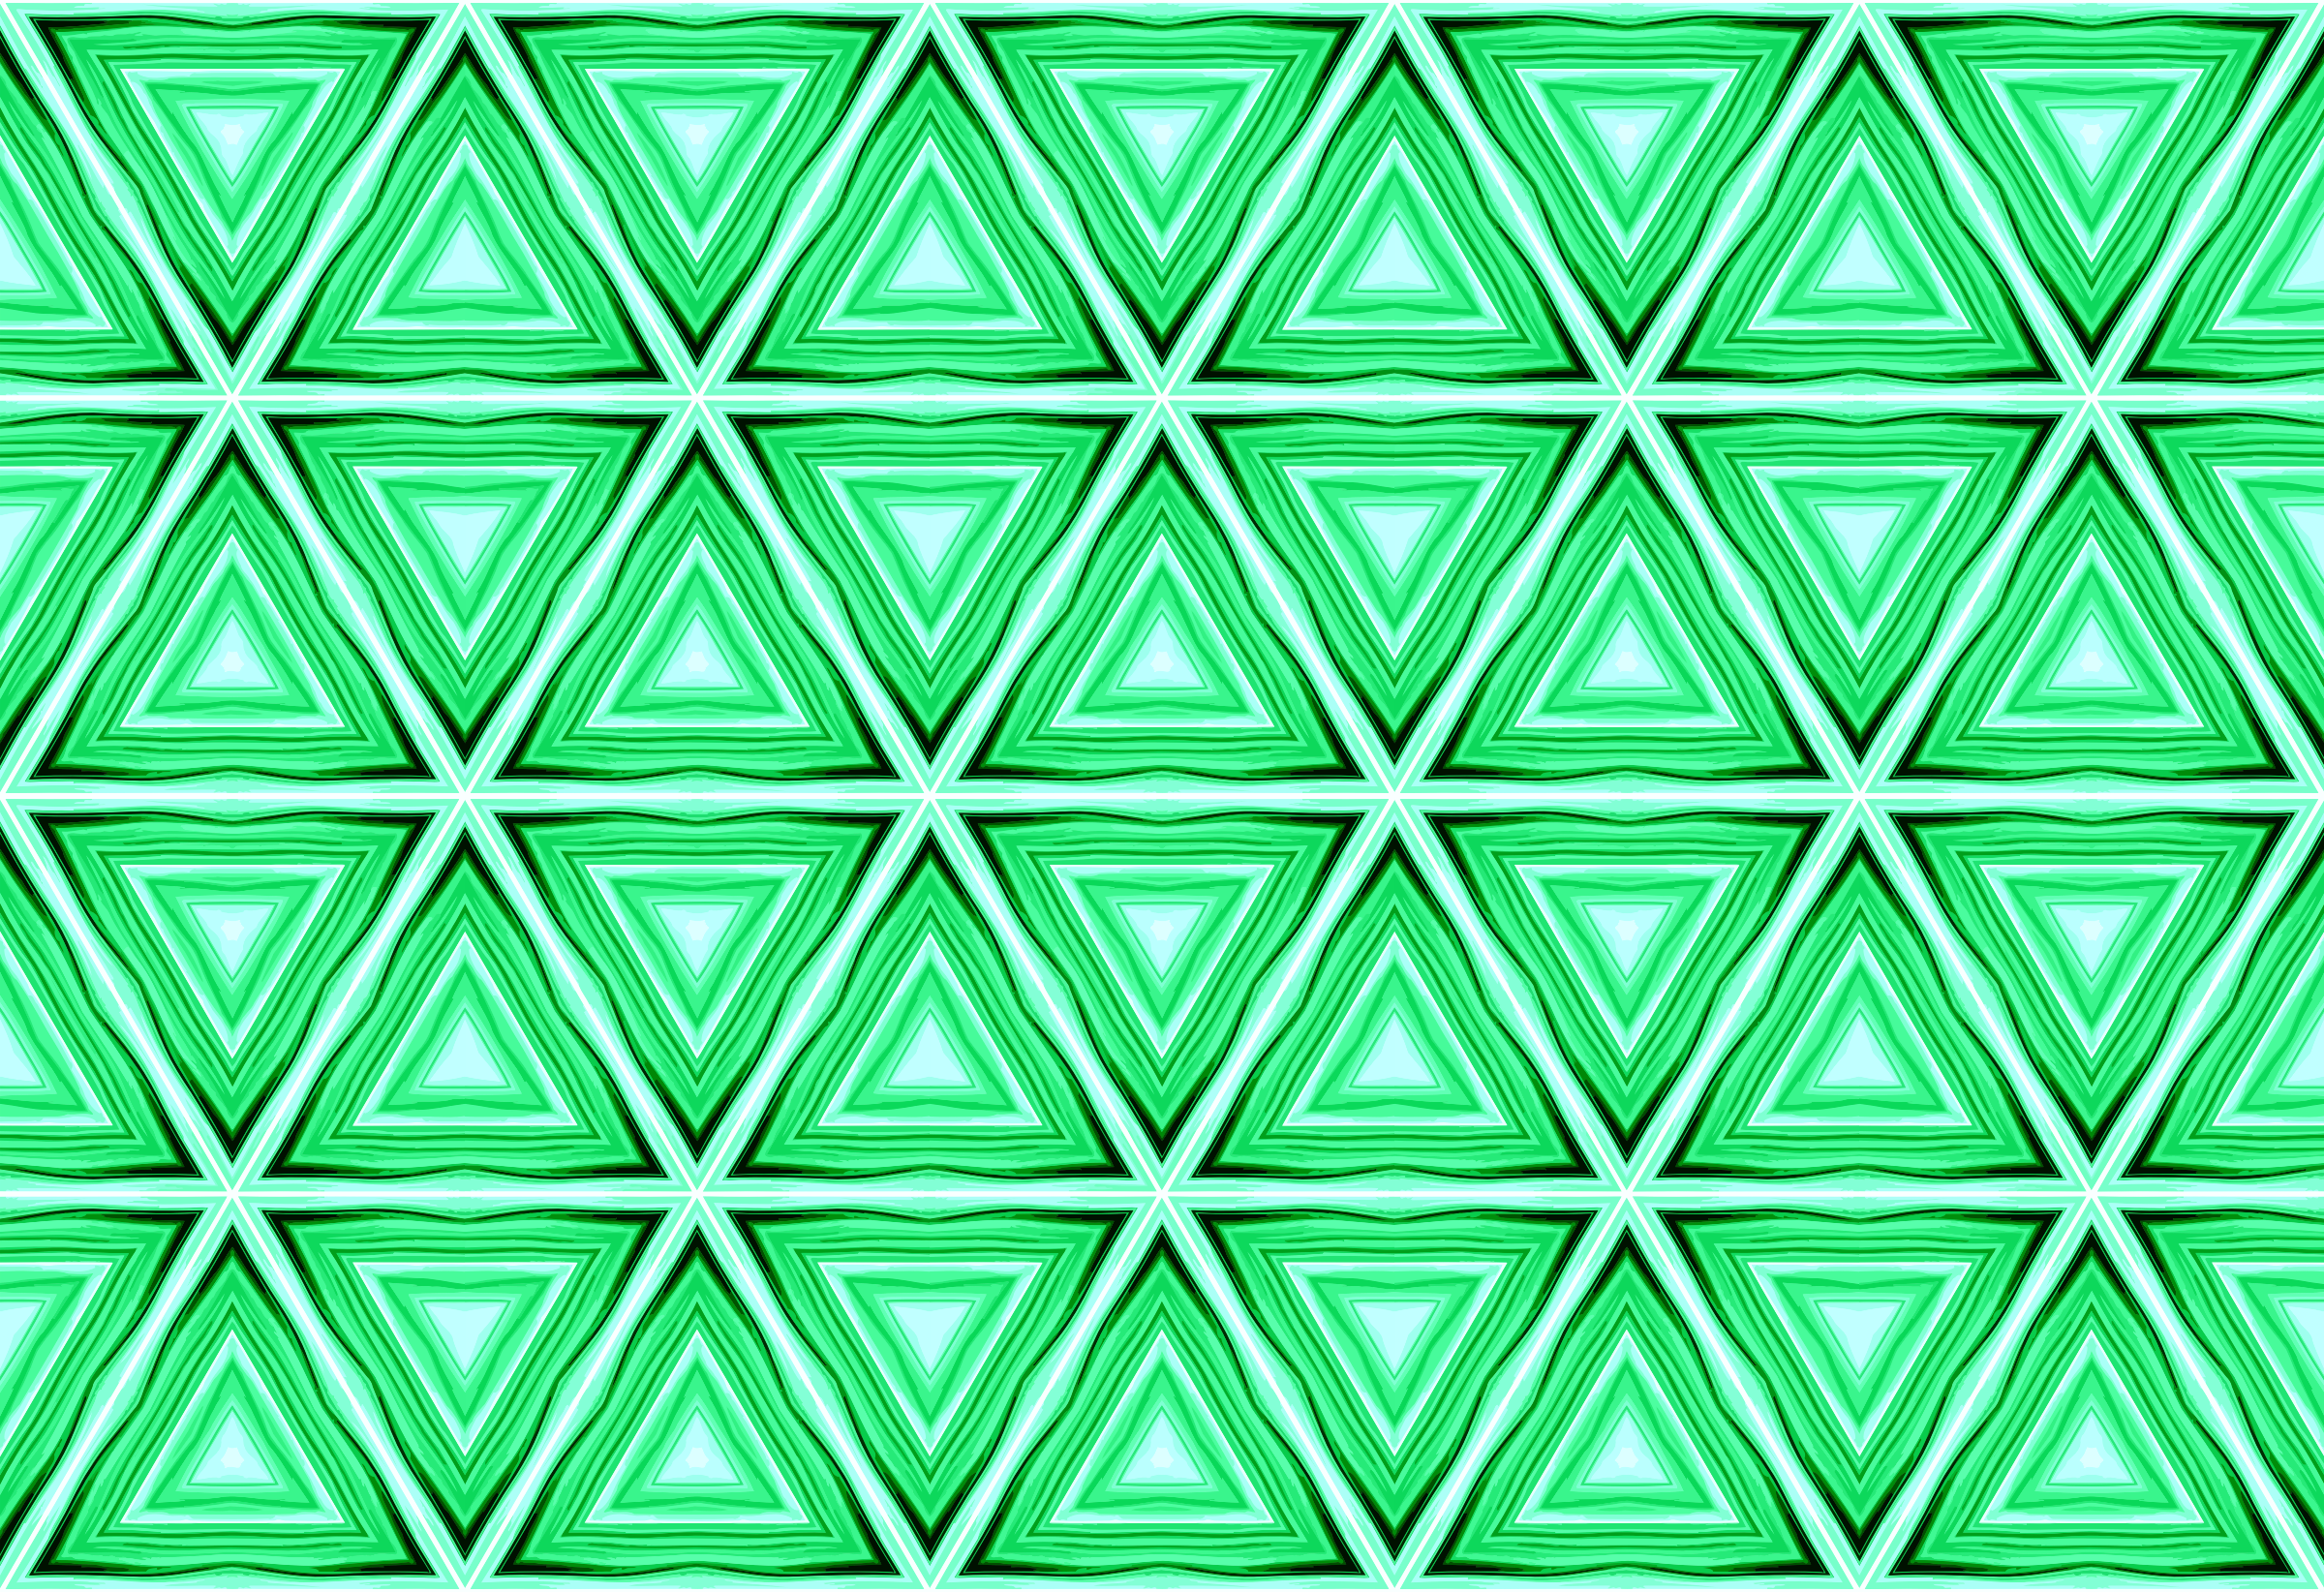 Background pattern 315 (colour 6) by Firkin